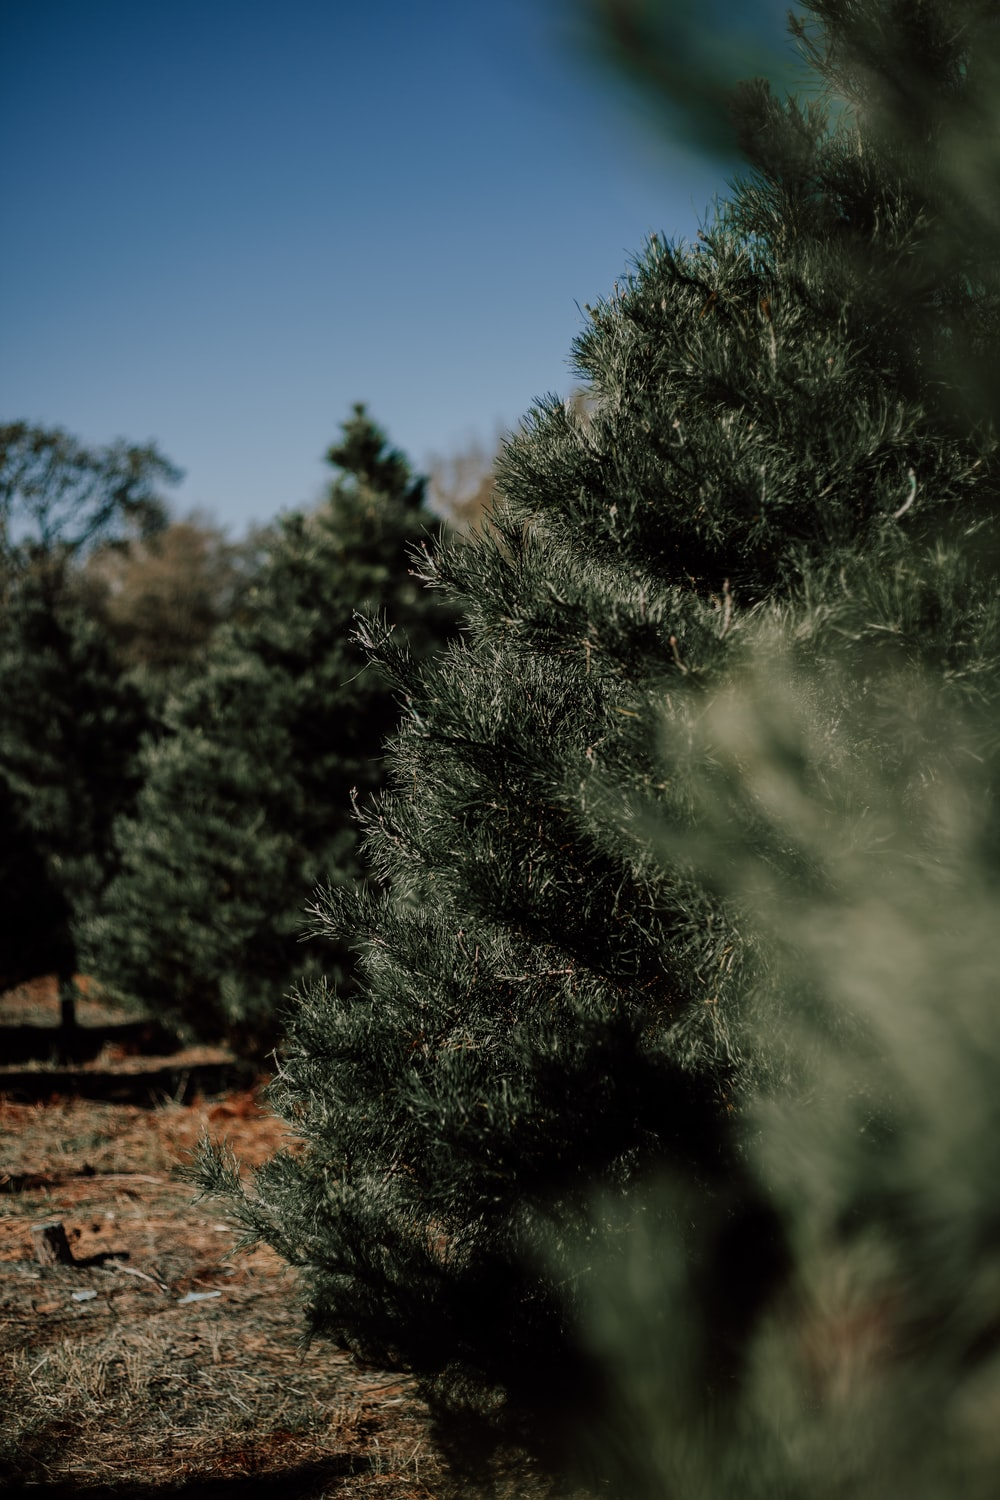 Elgin Christmas Tree Farm.Elgin Christmas Tree Farm Pictures Download Free Images On